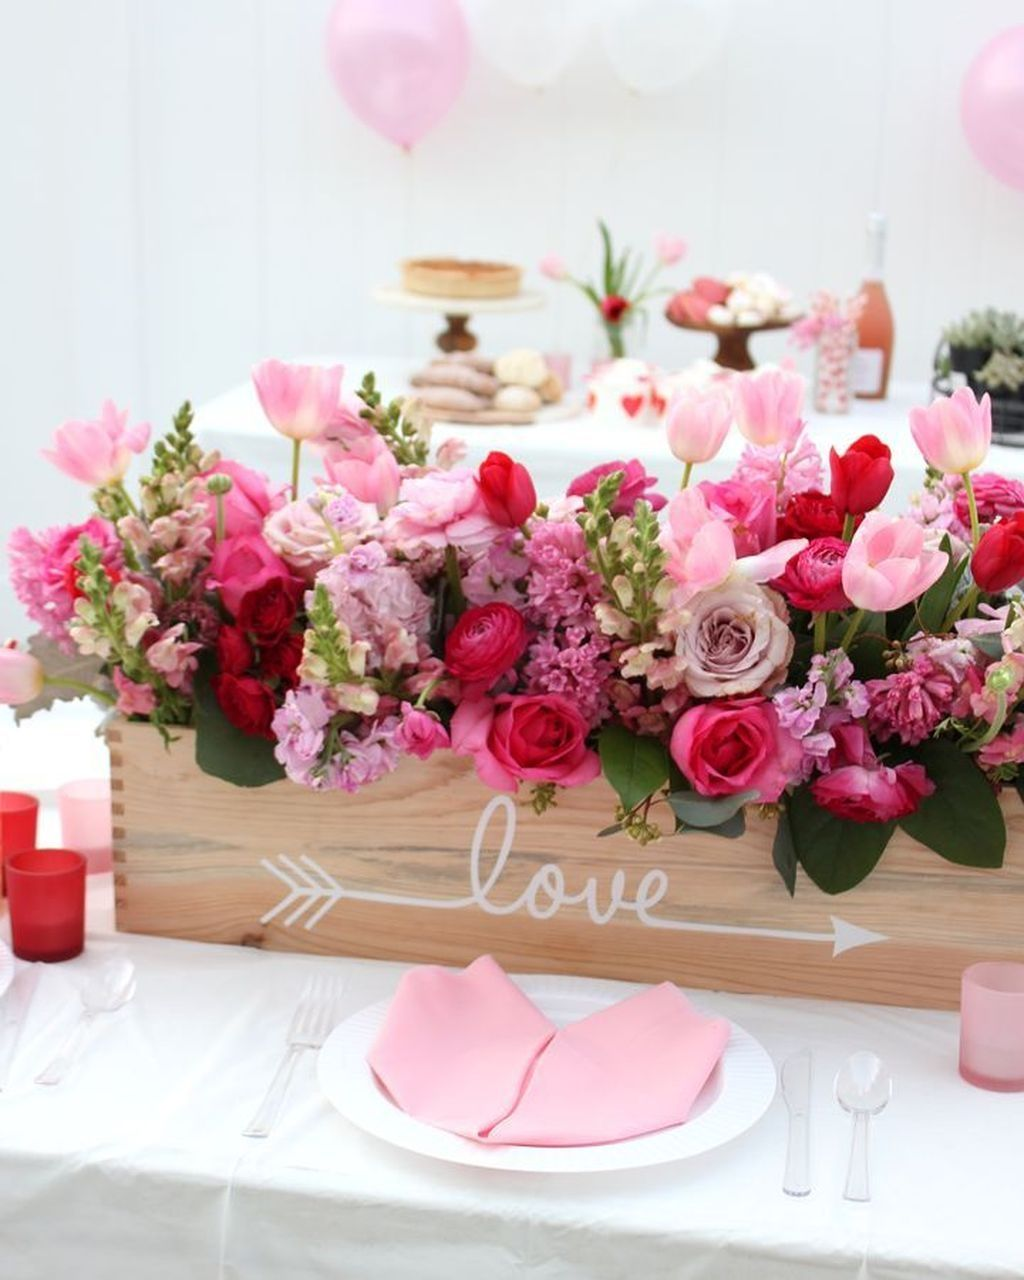 49 Unordinary Centerpieces Decoration Ideas For Valentines Day